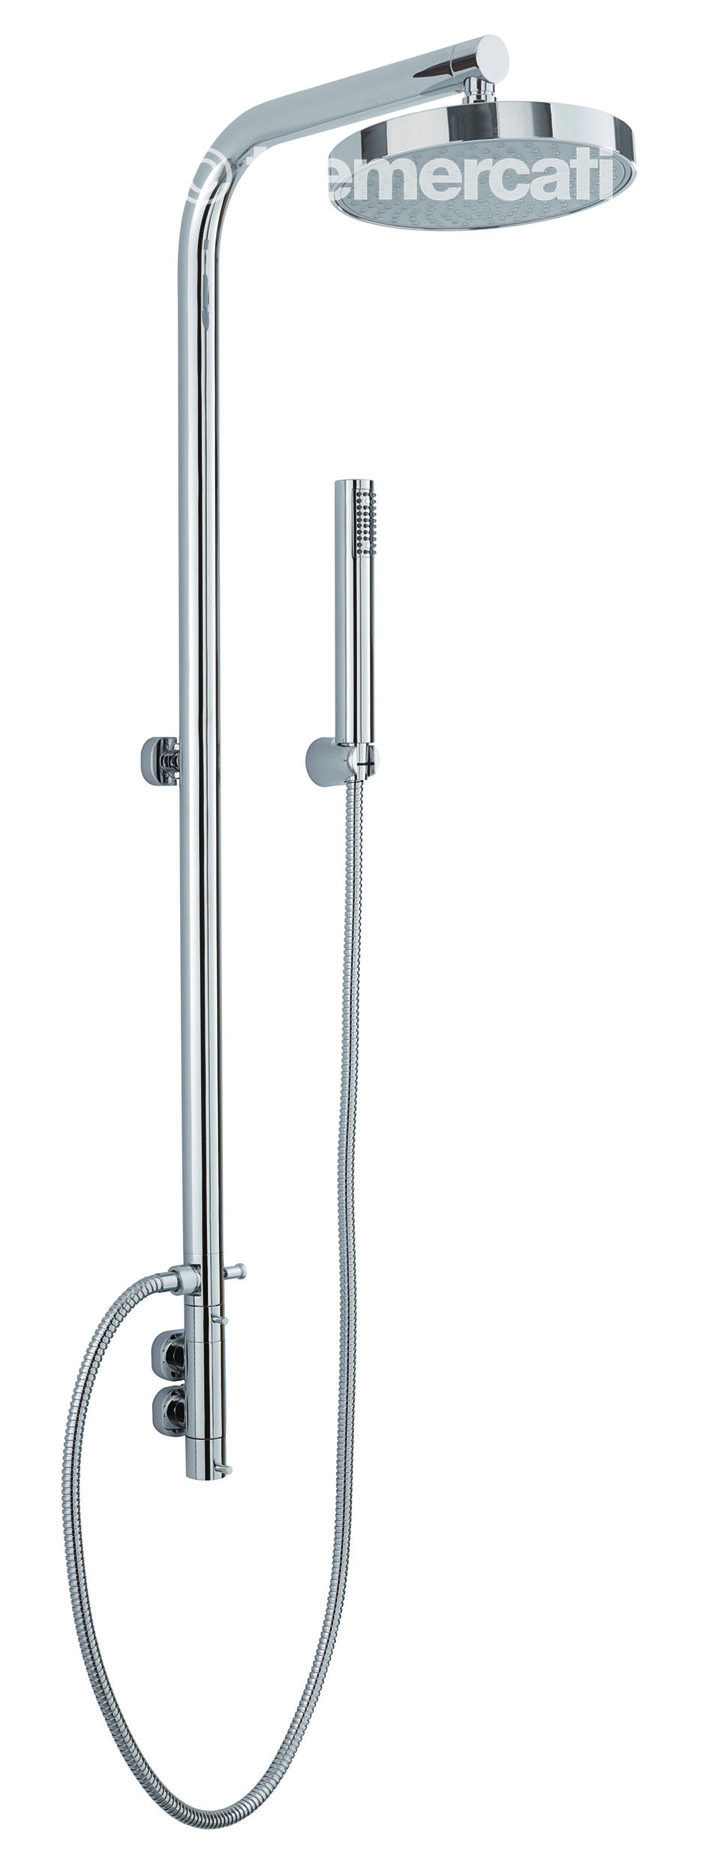 TRE MERCATI VERTICA EXPOSED THERMOSTATIC VERTICAL SHOWER VALVE COMPLETE WITH RISER POLE AND ROSE CHROME PLATED